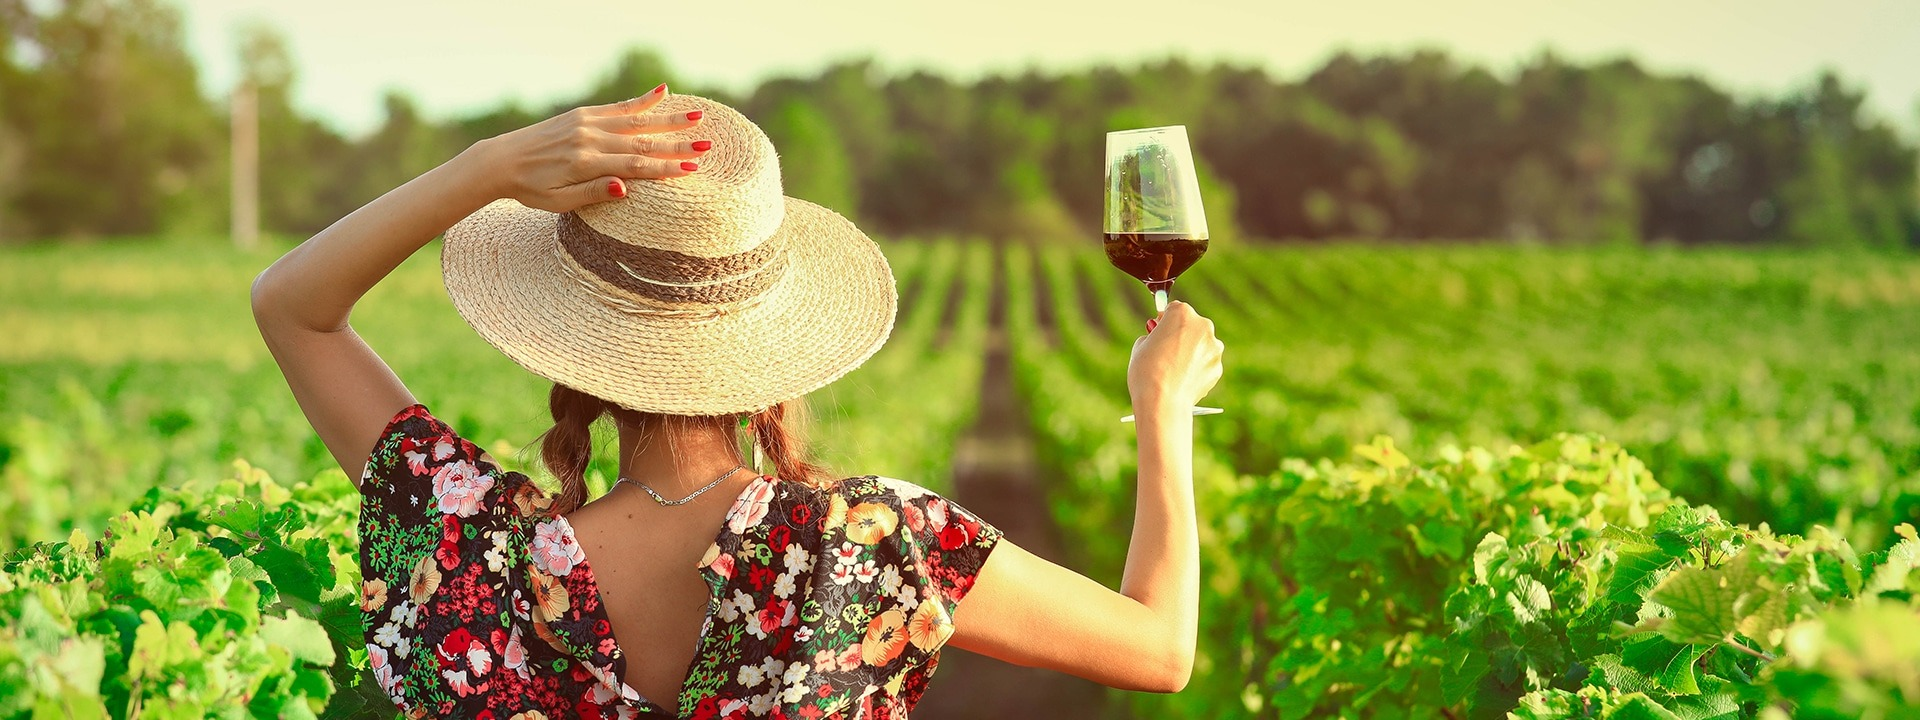 Wine farms are back in business